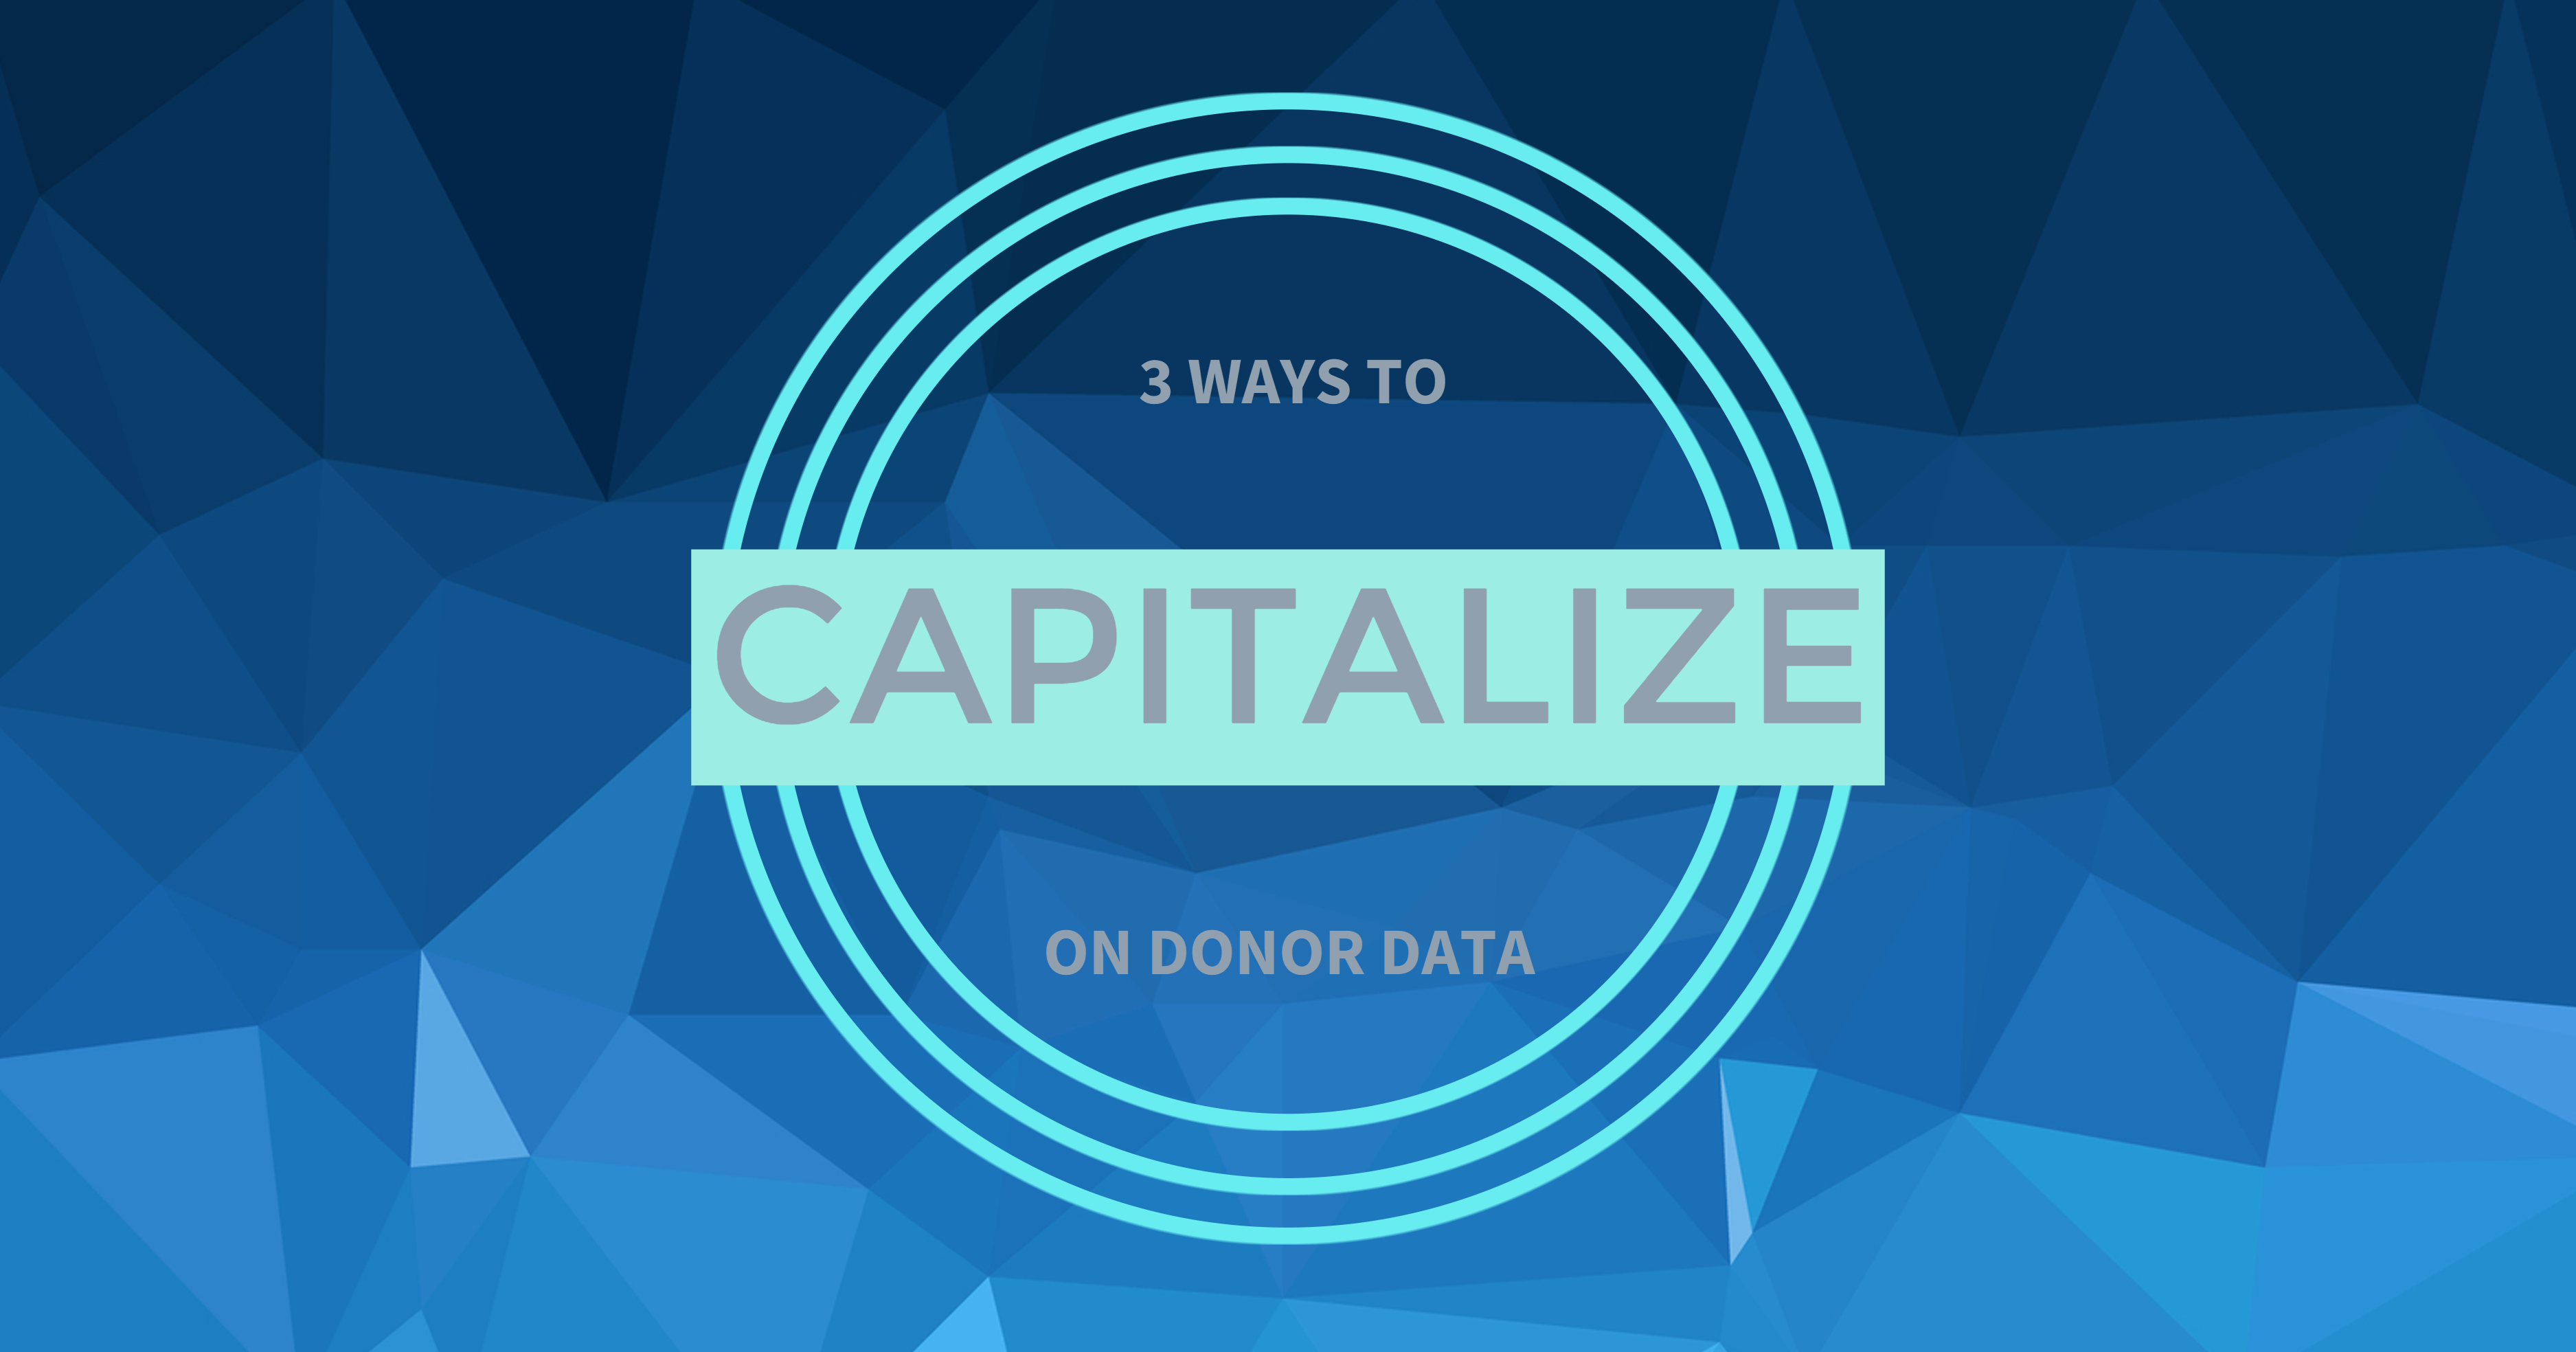 Capitalize on Donor Data